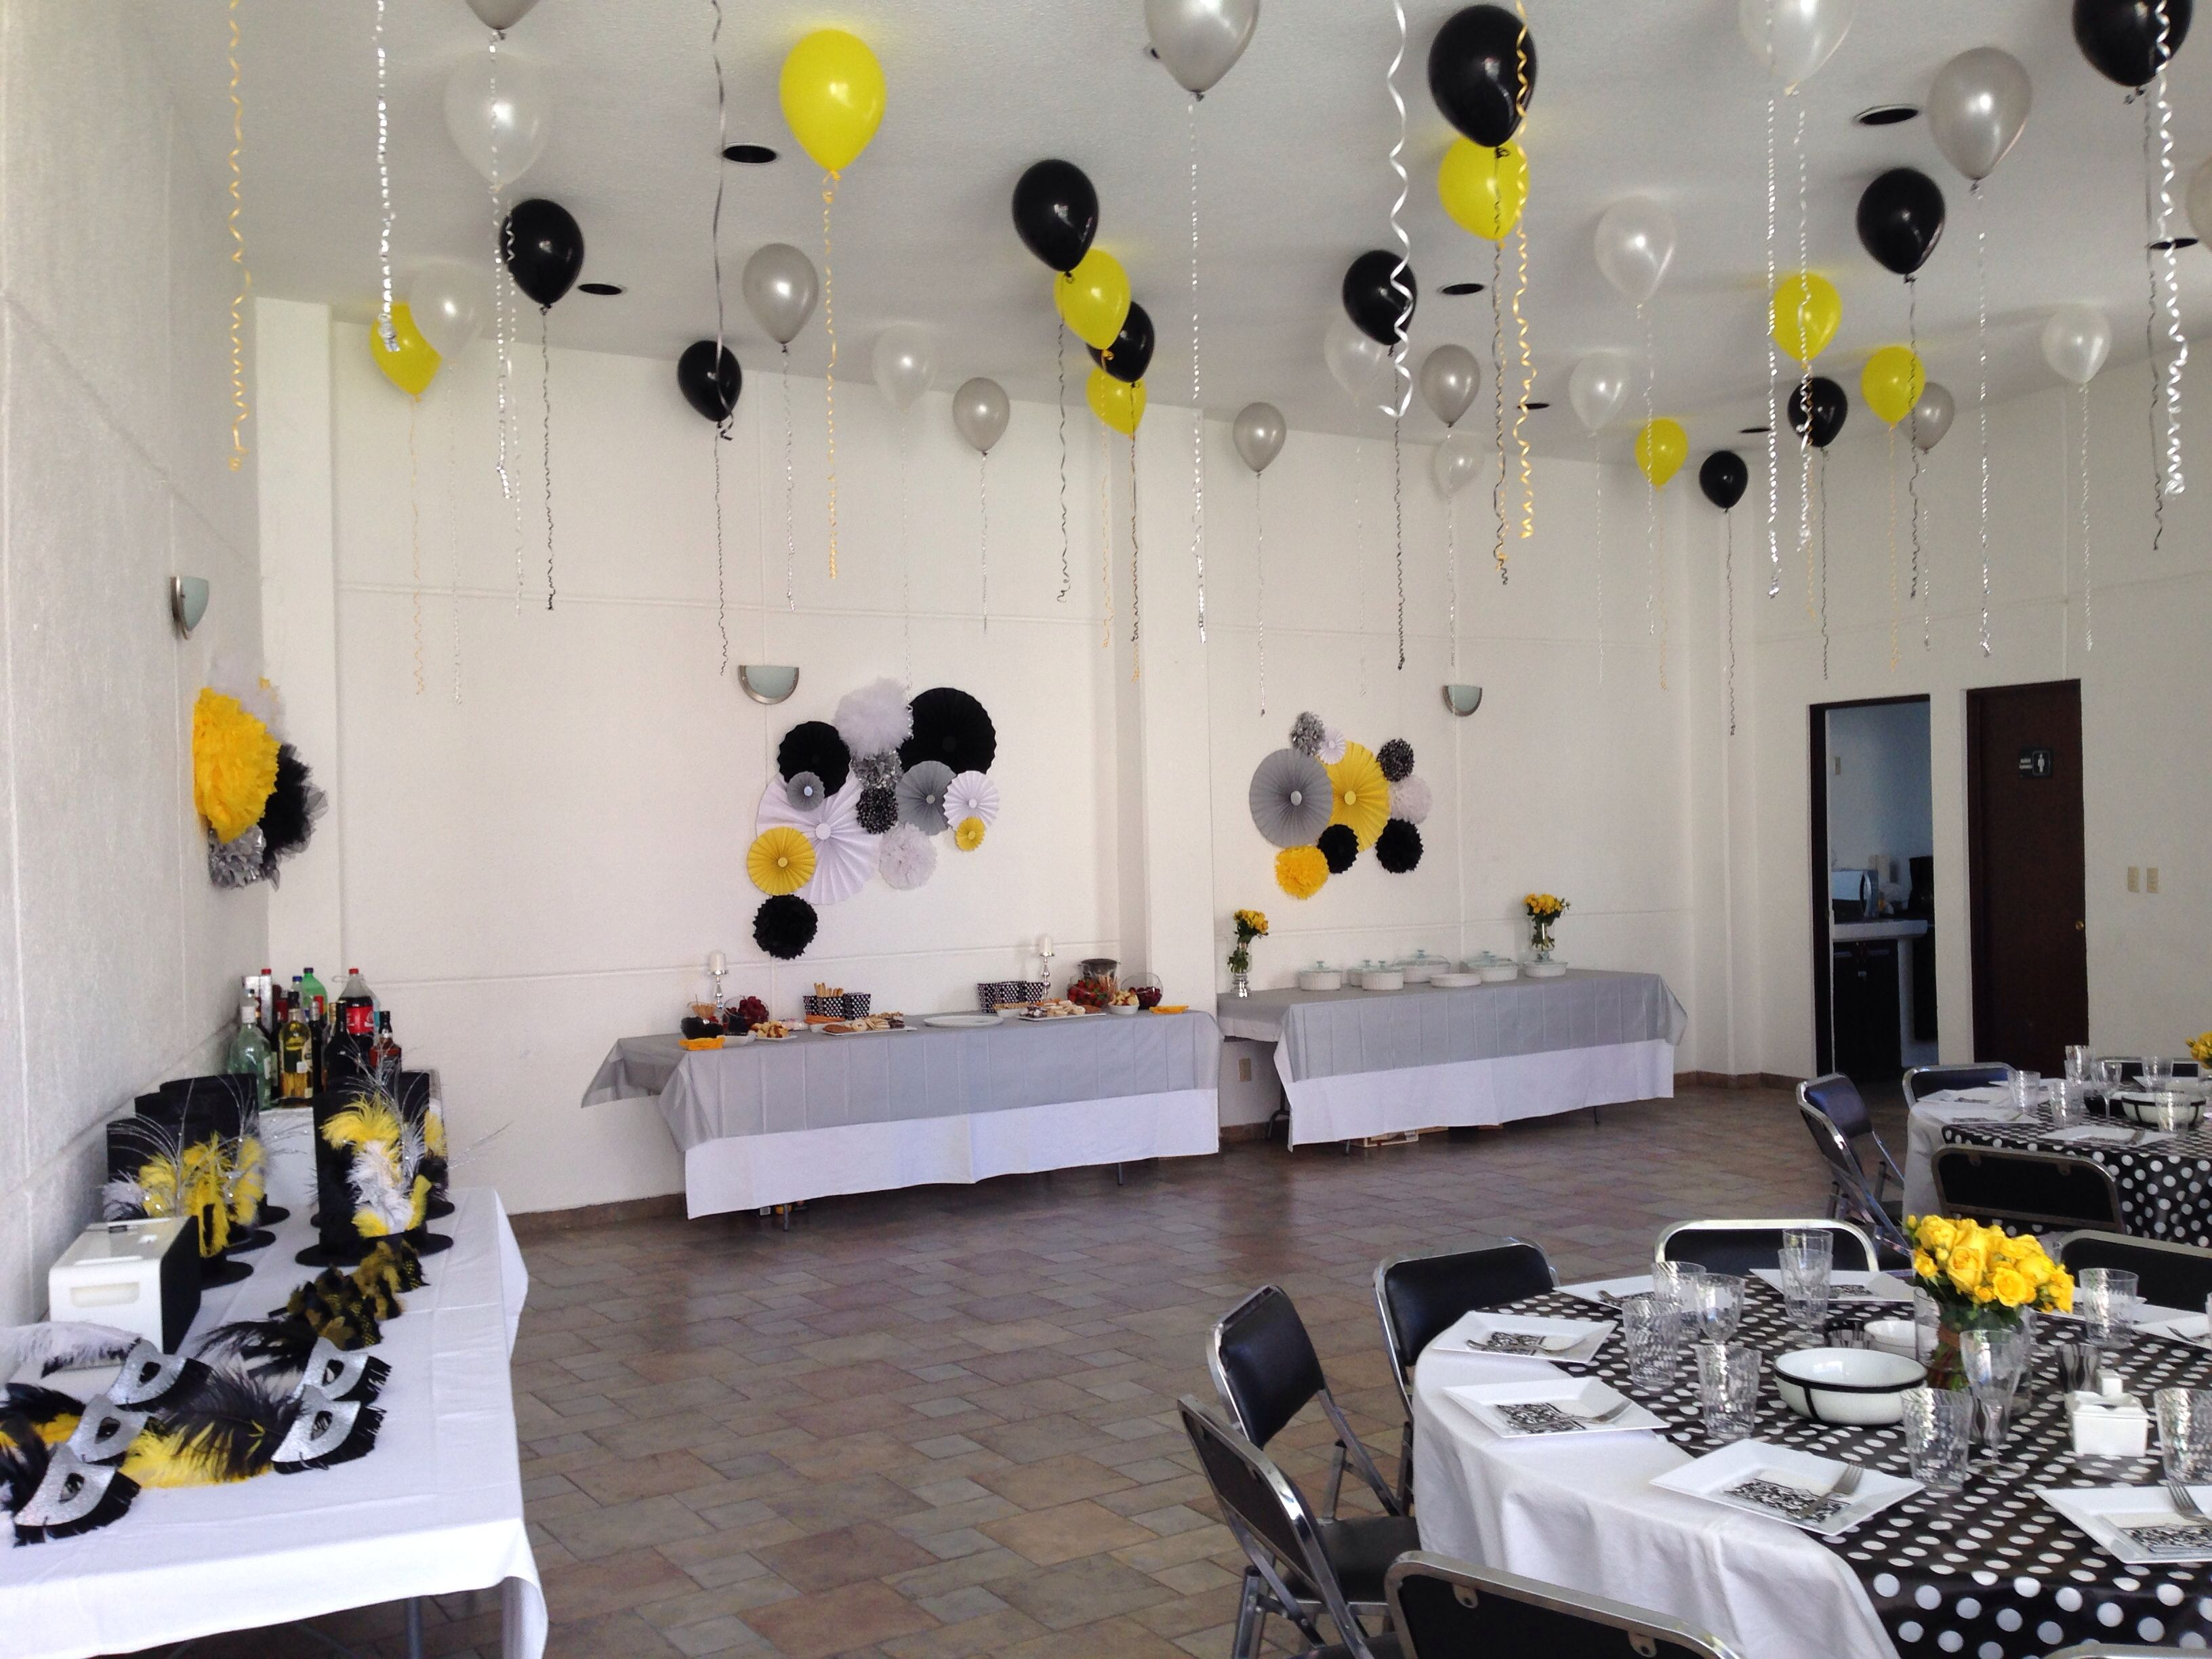 Decoraci n fiesta blanco y negro party yellow party - Decoracion en blanco y negro ...